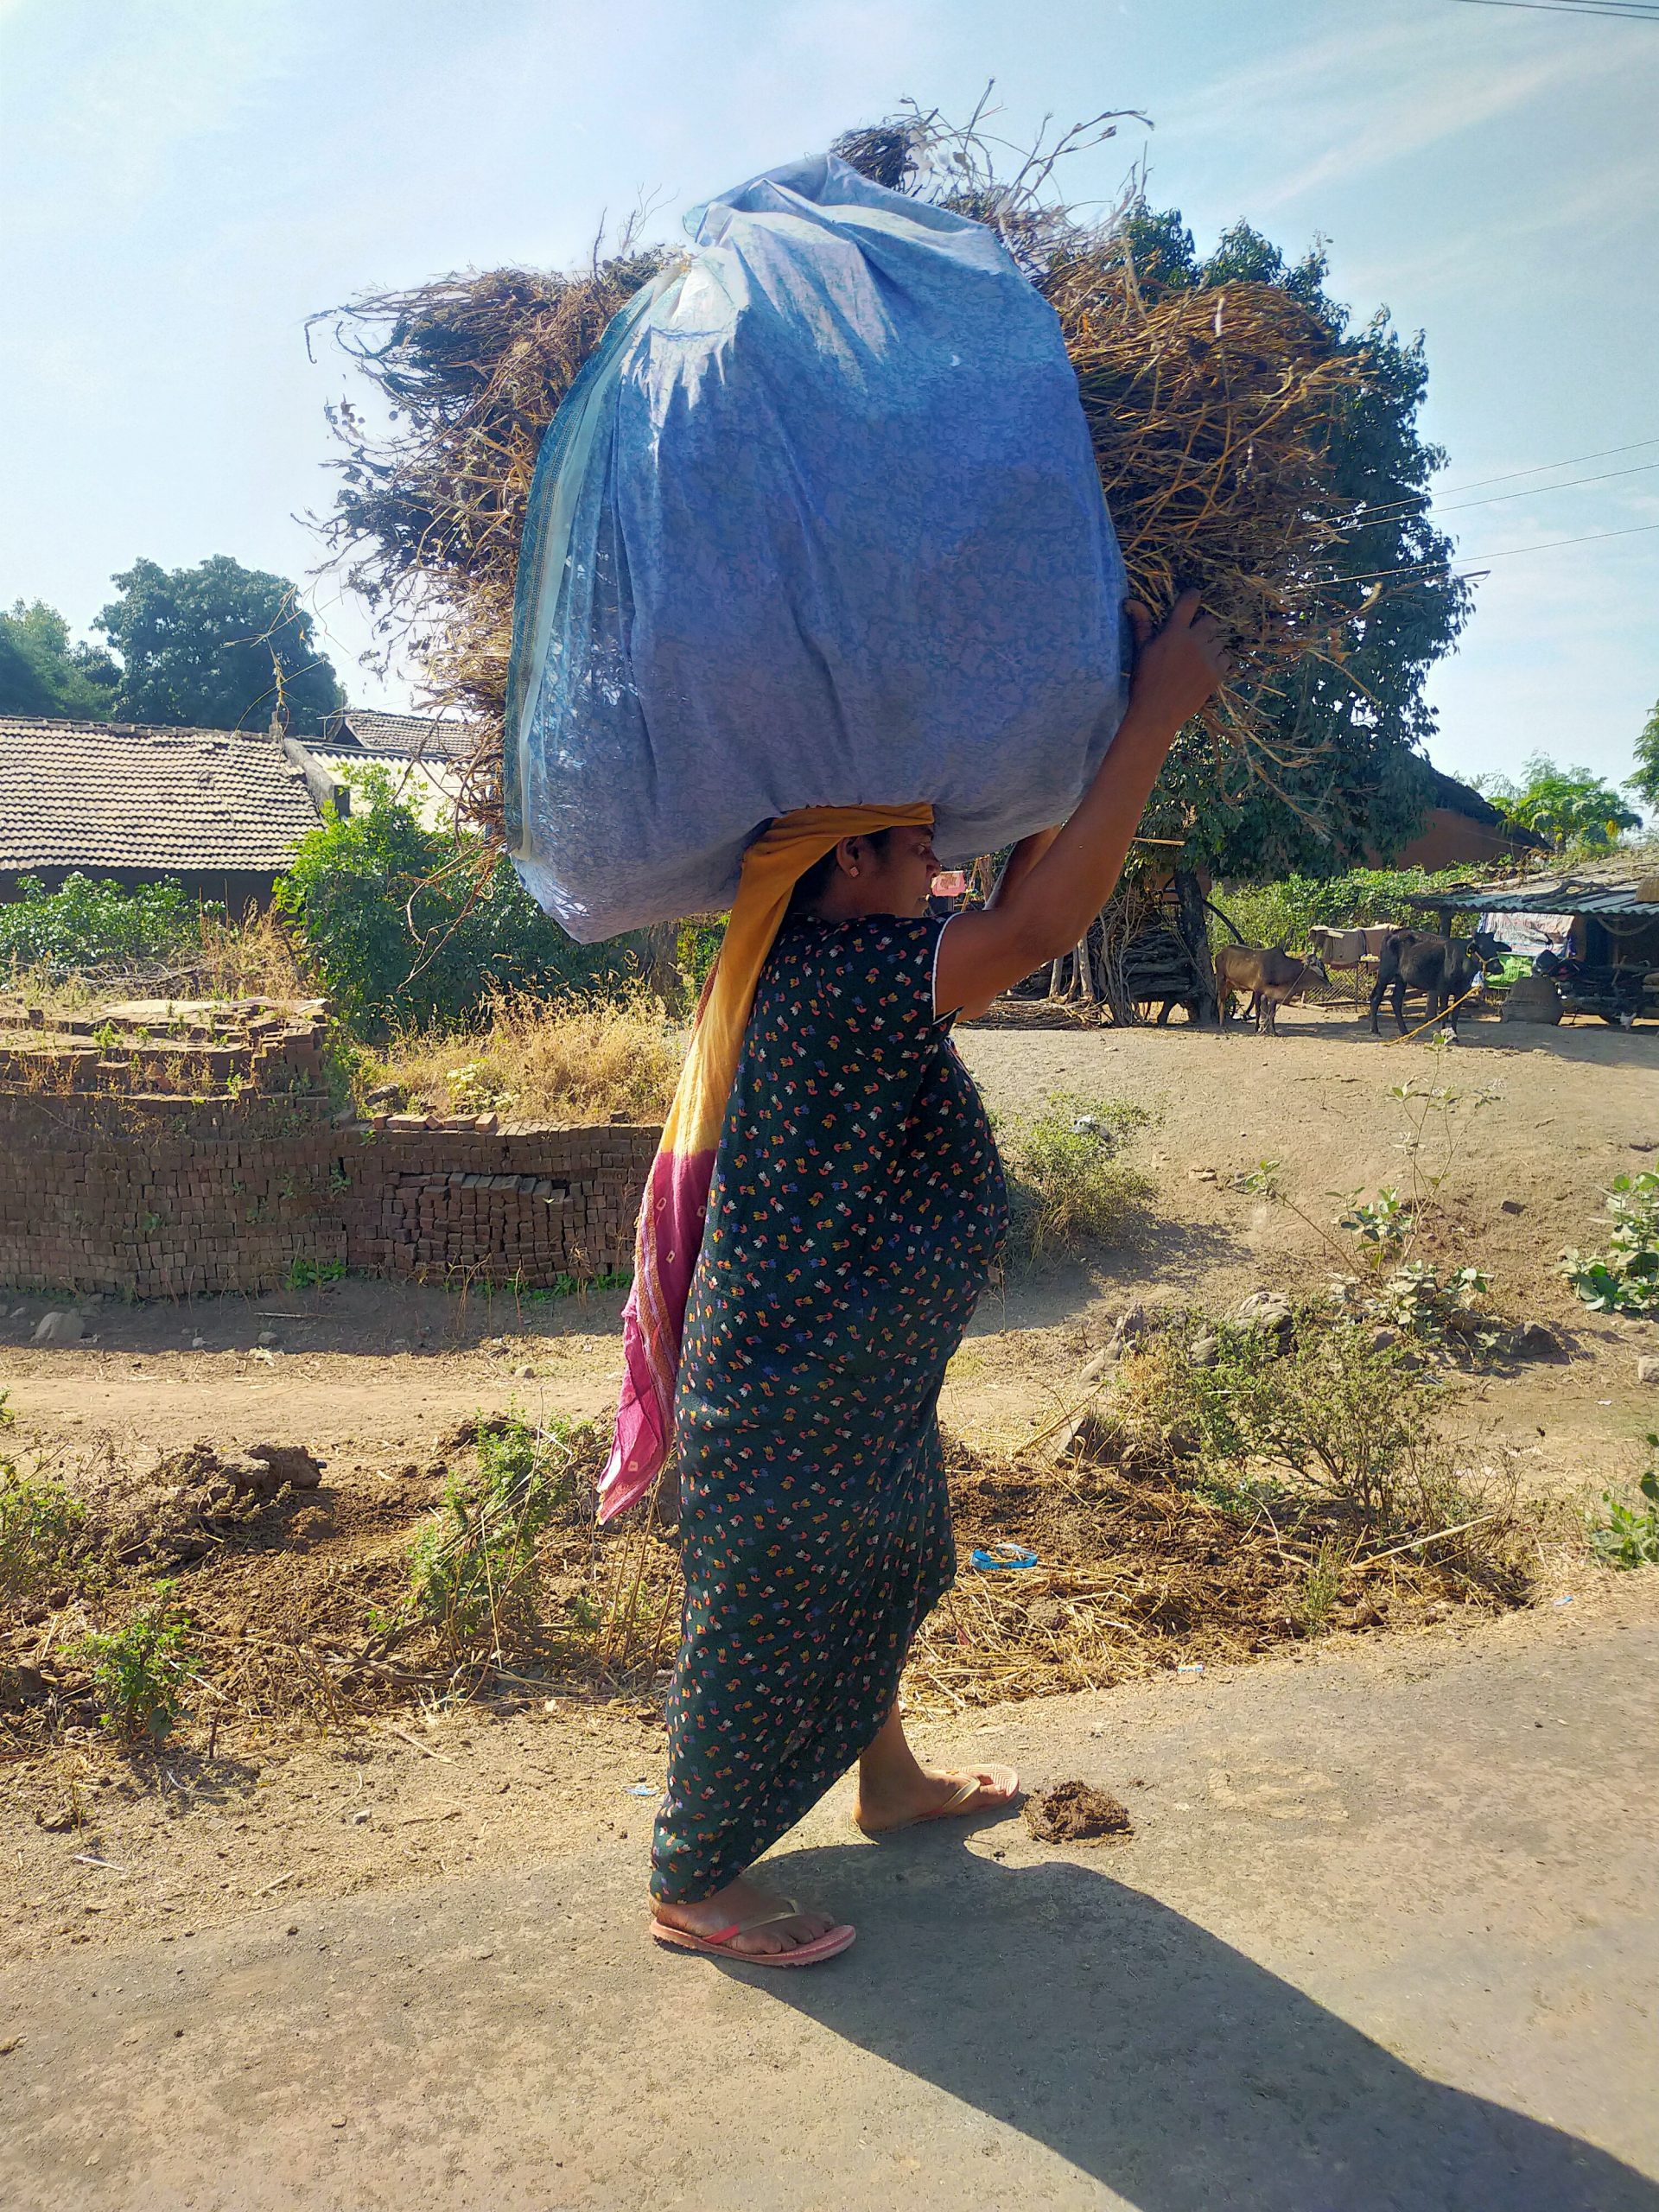 A village woman carrying burden